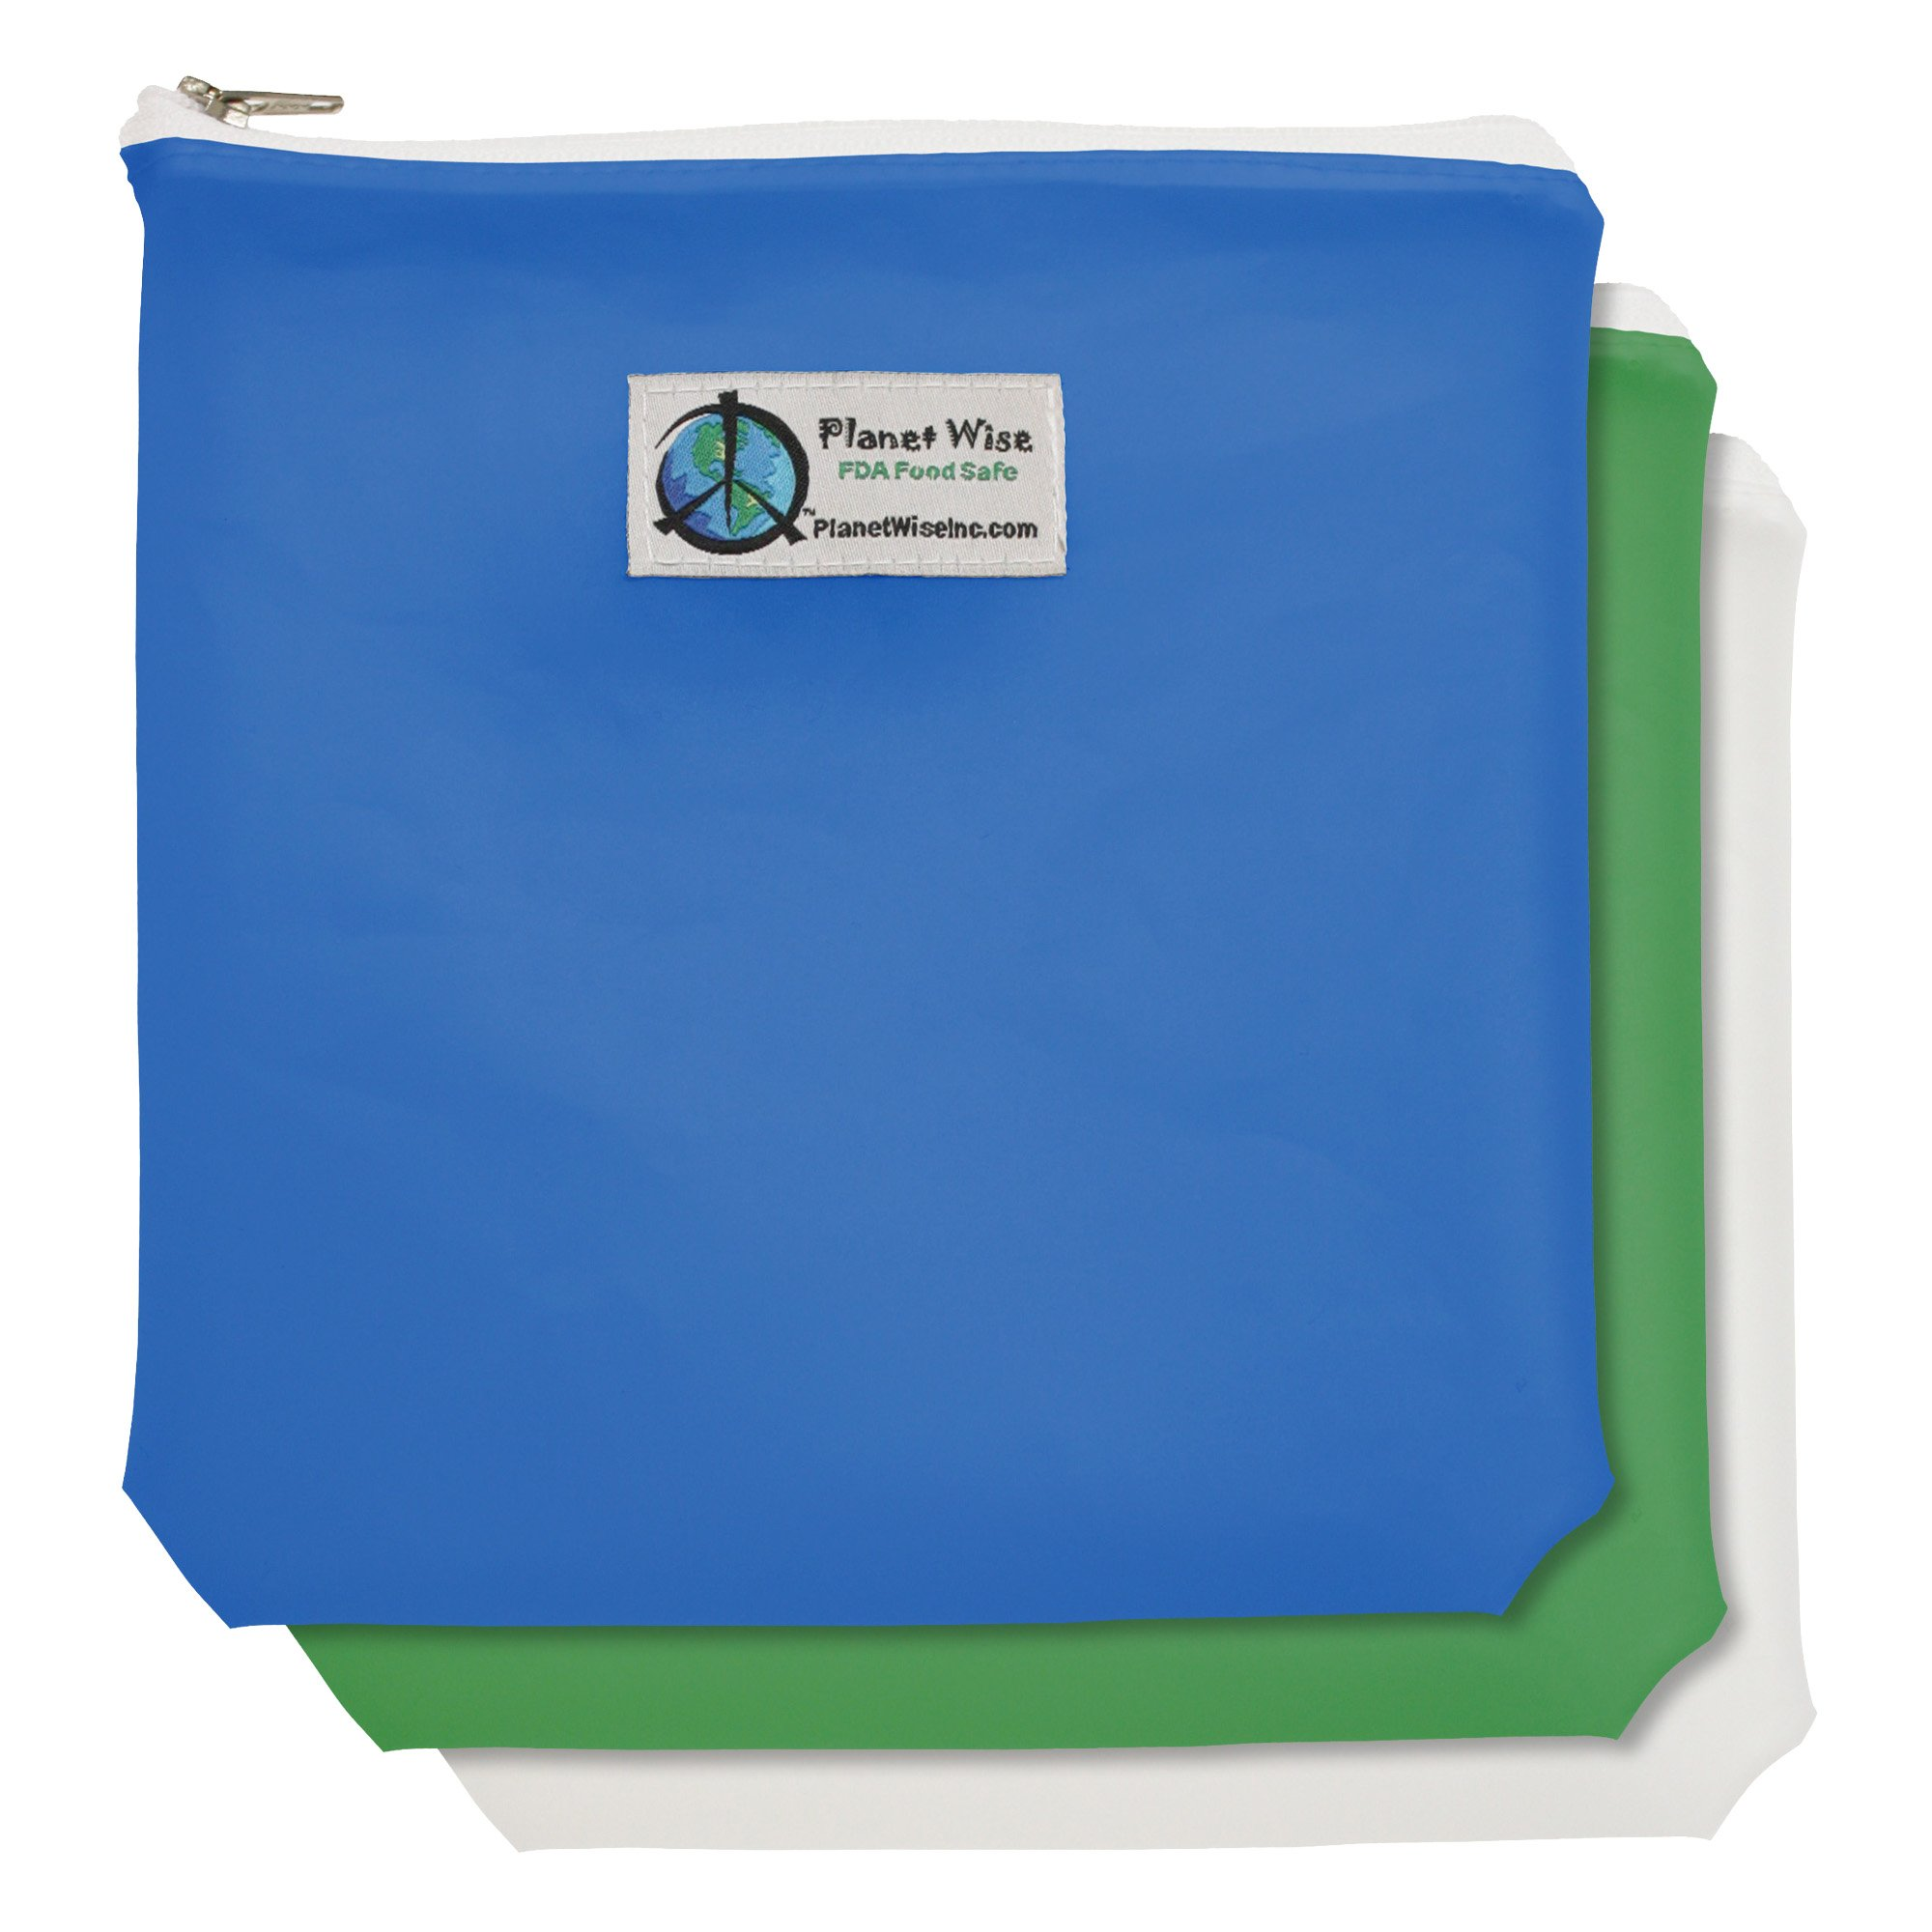 Planet Wise Tint Quart Bag - 3-Pack - Zipper (Blue/Green) by Planet Wise